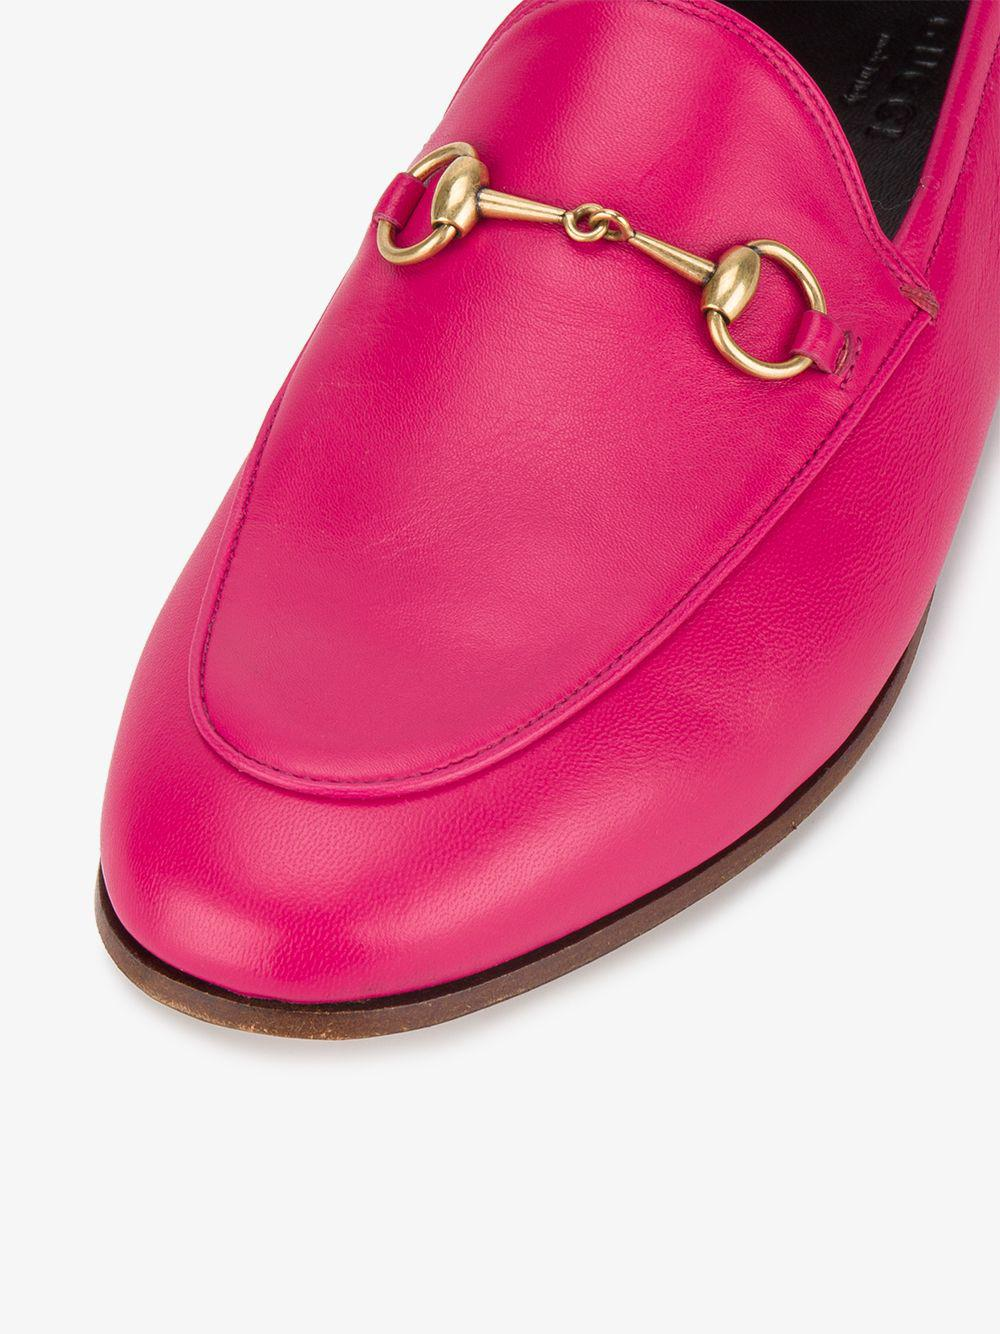 35317654b77 Lyst - Gucci Fuchsia Pink Brixton Leather Loafers in Pink